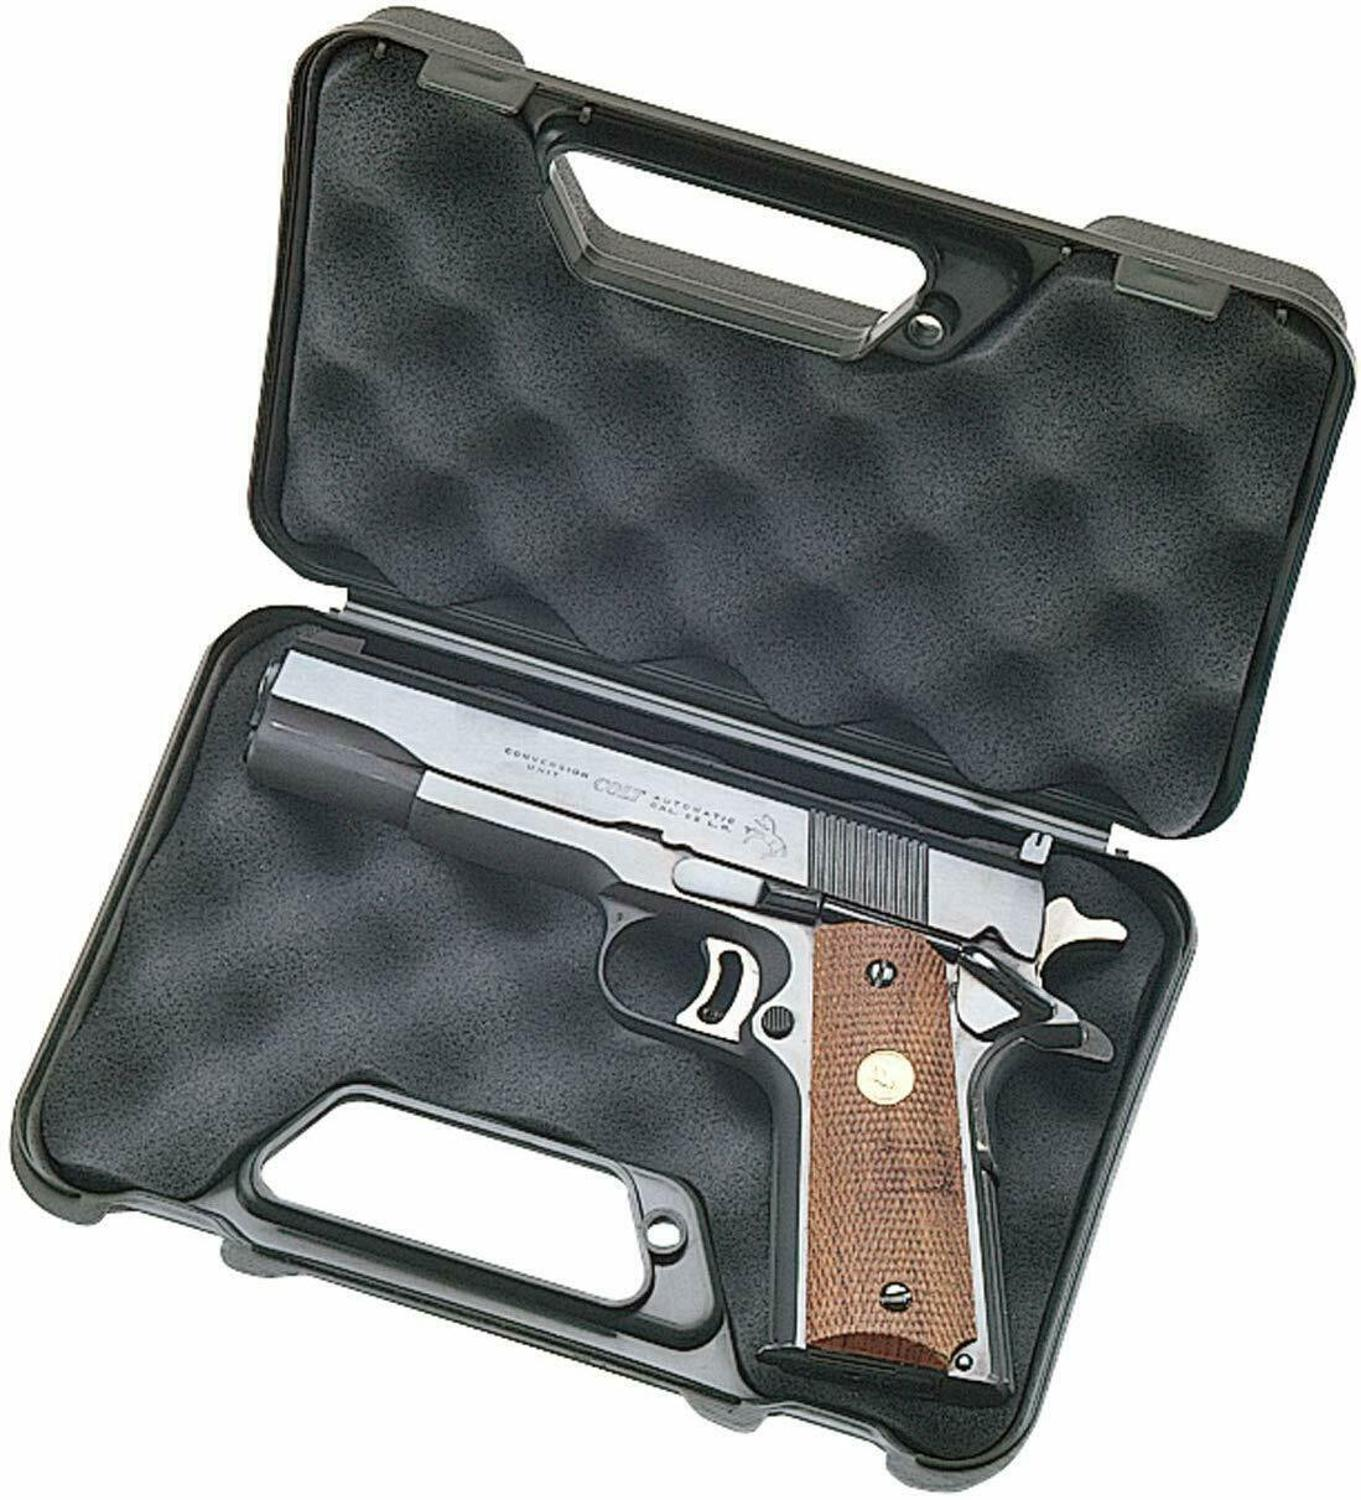 ABS Pistol Case Tactical Hard Pistol Storage Case Gun Case Padded Hunting Accessories Carry Boxs For Hunting Airsoft